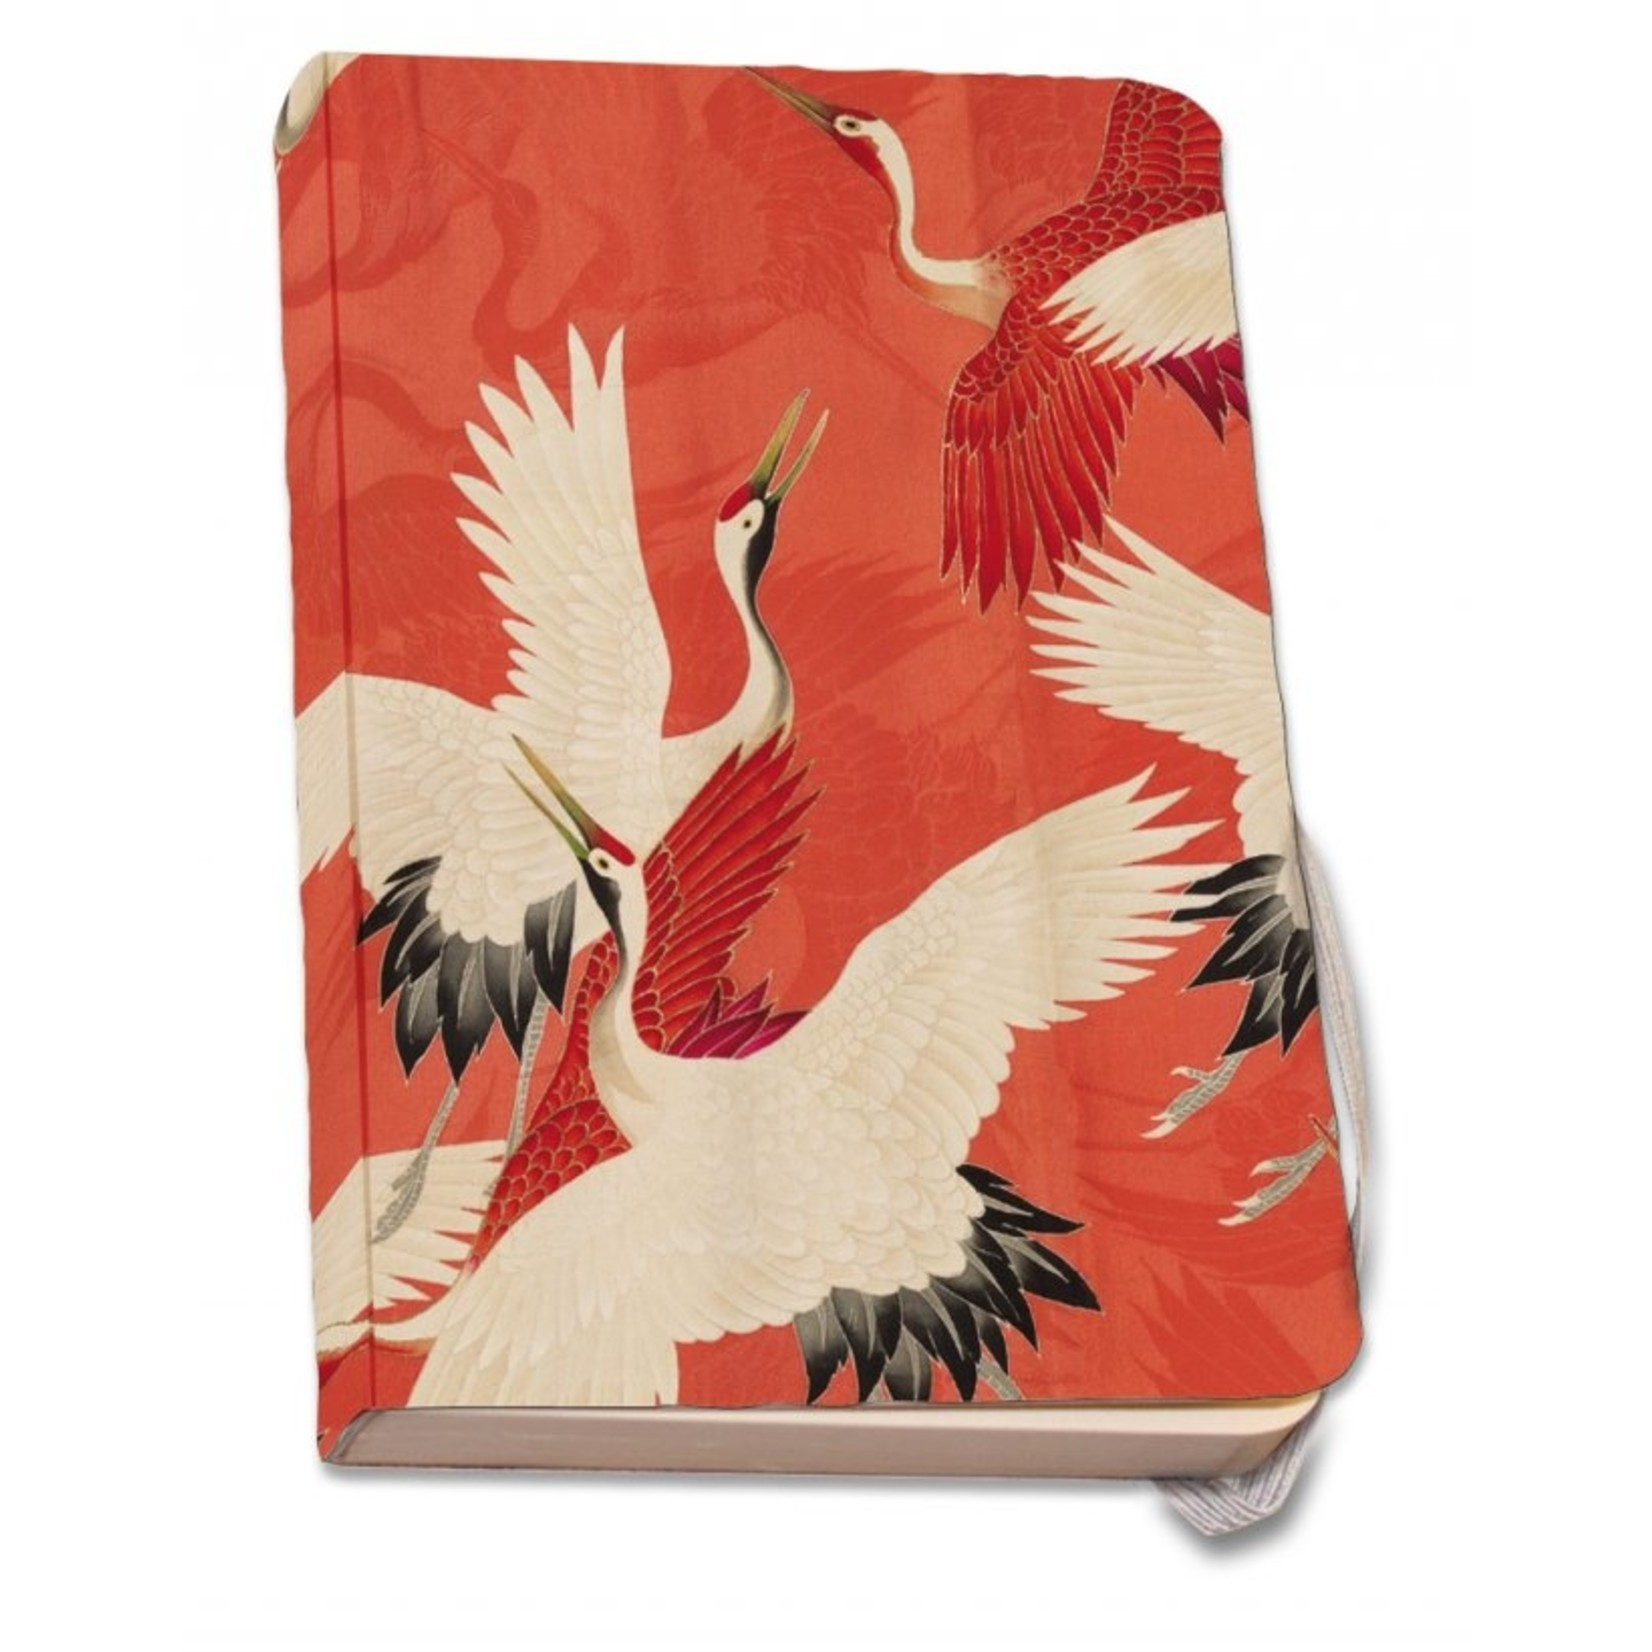 Bekking & Blitz Woman haori with Red and White Cranes(A5) Zachte kaft